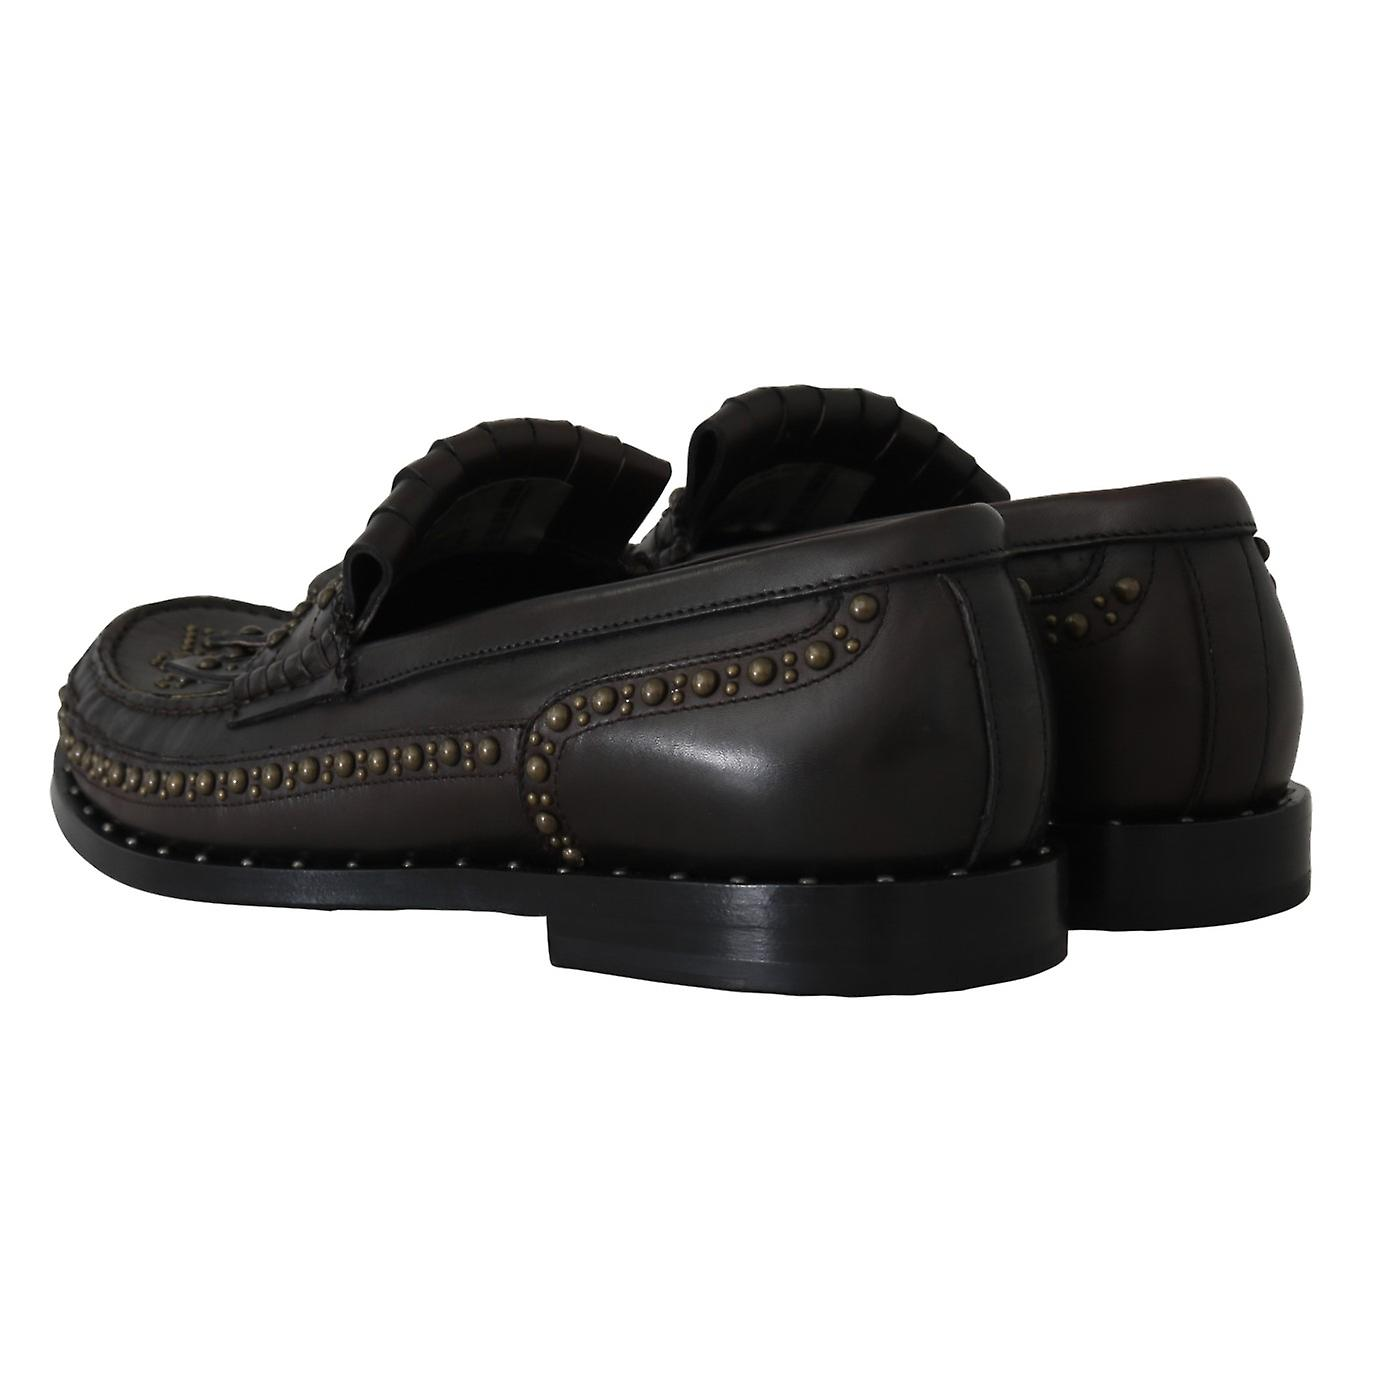 Brown Leather Loafers Moccasins Shoes